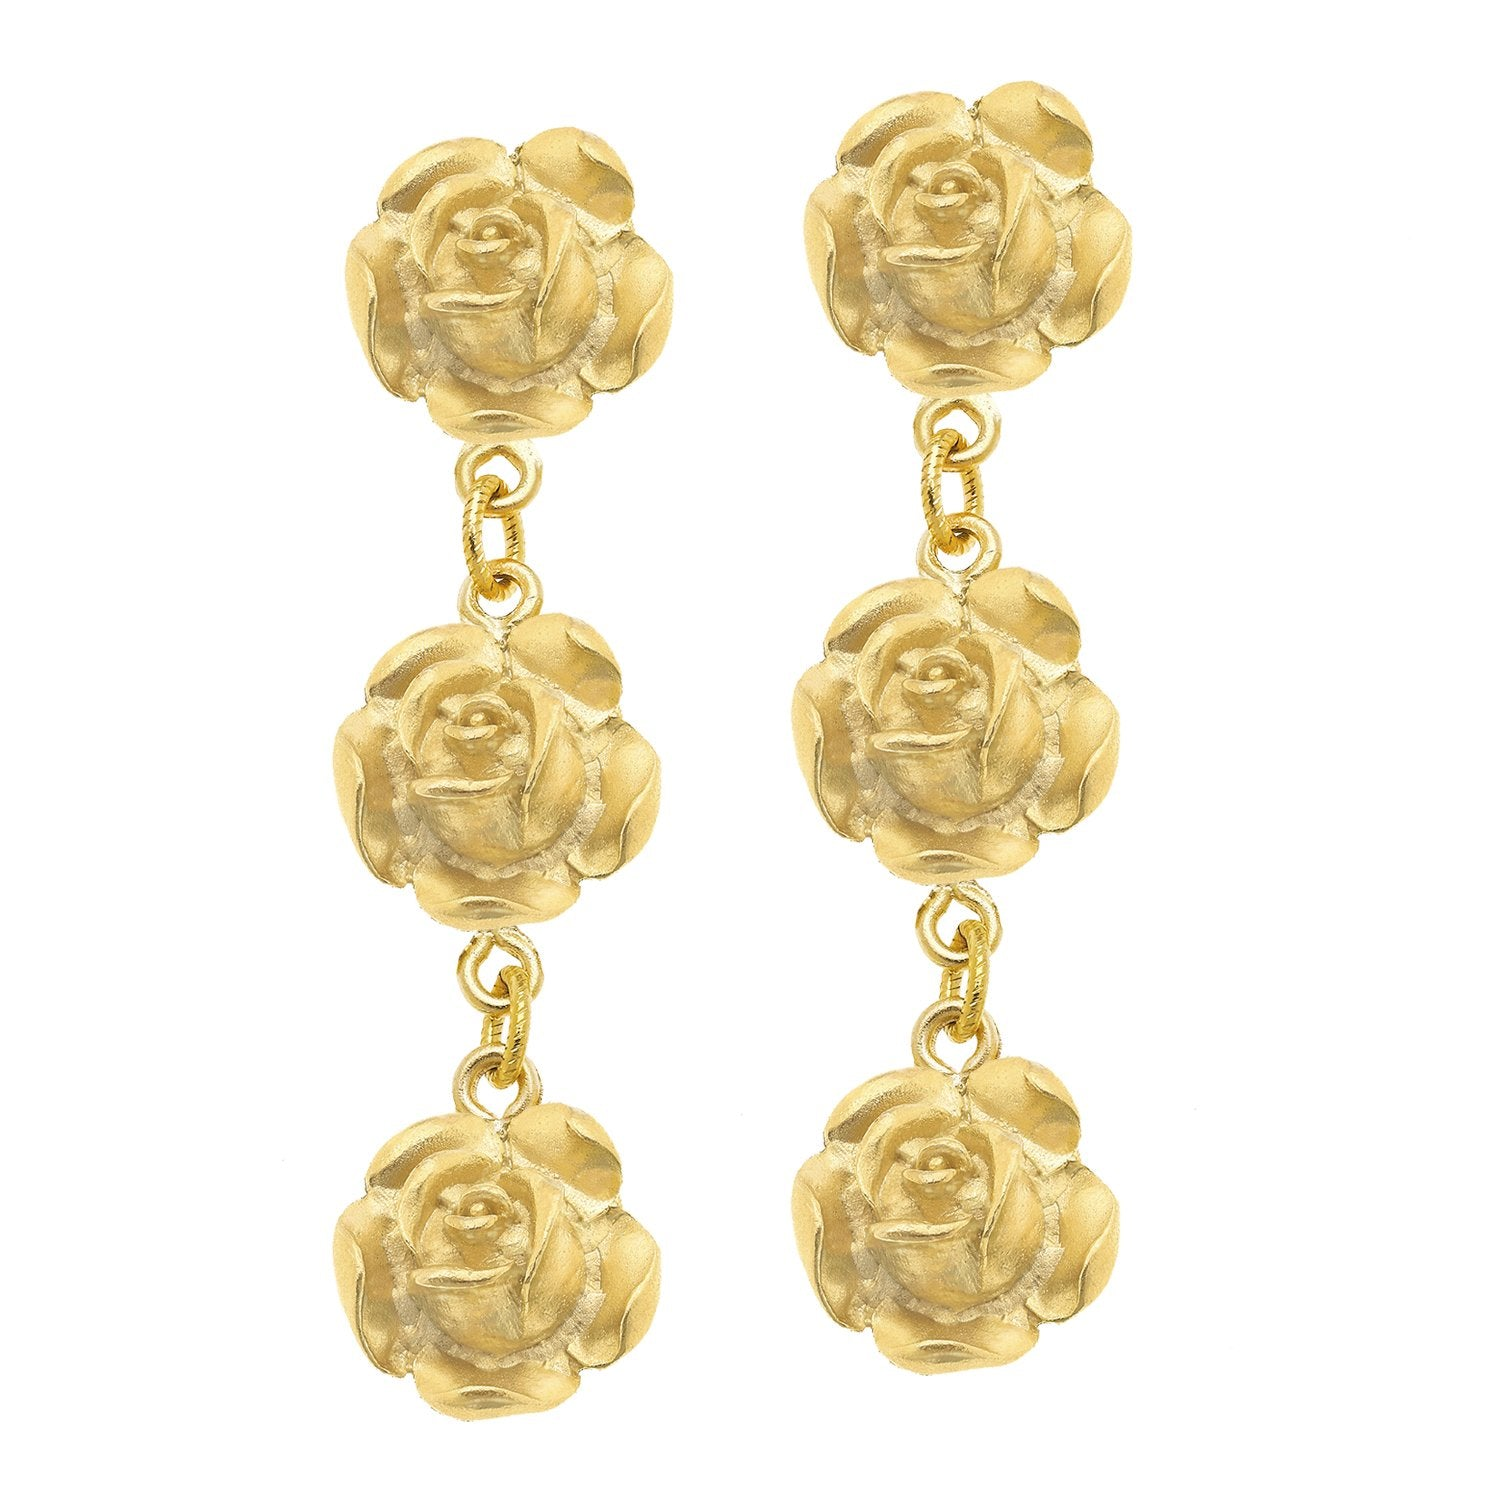 Rose Tier Earrings